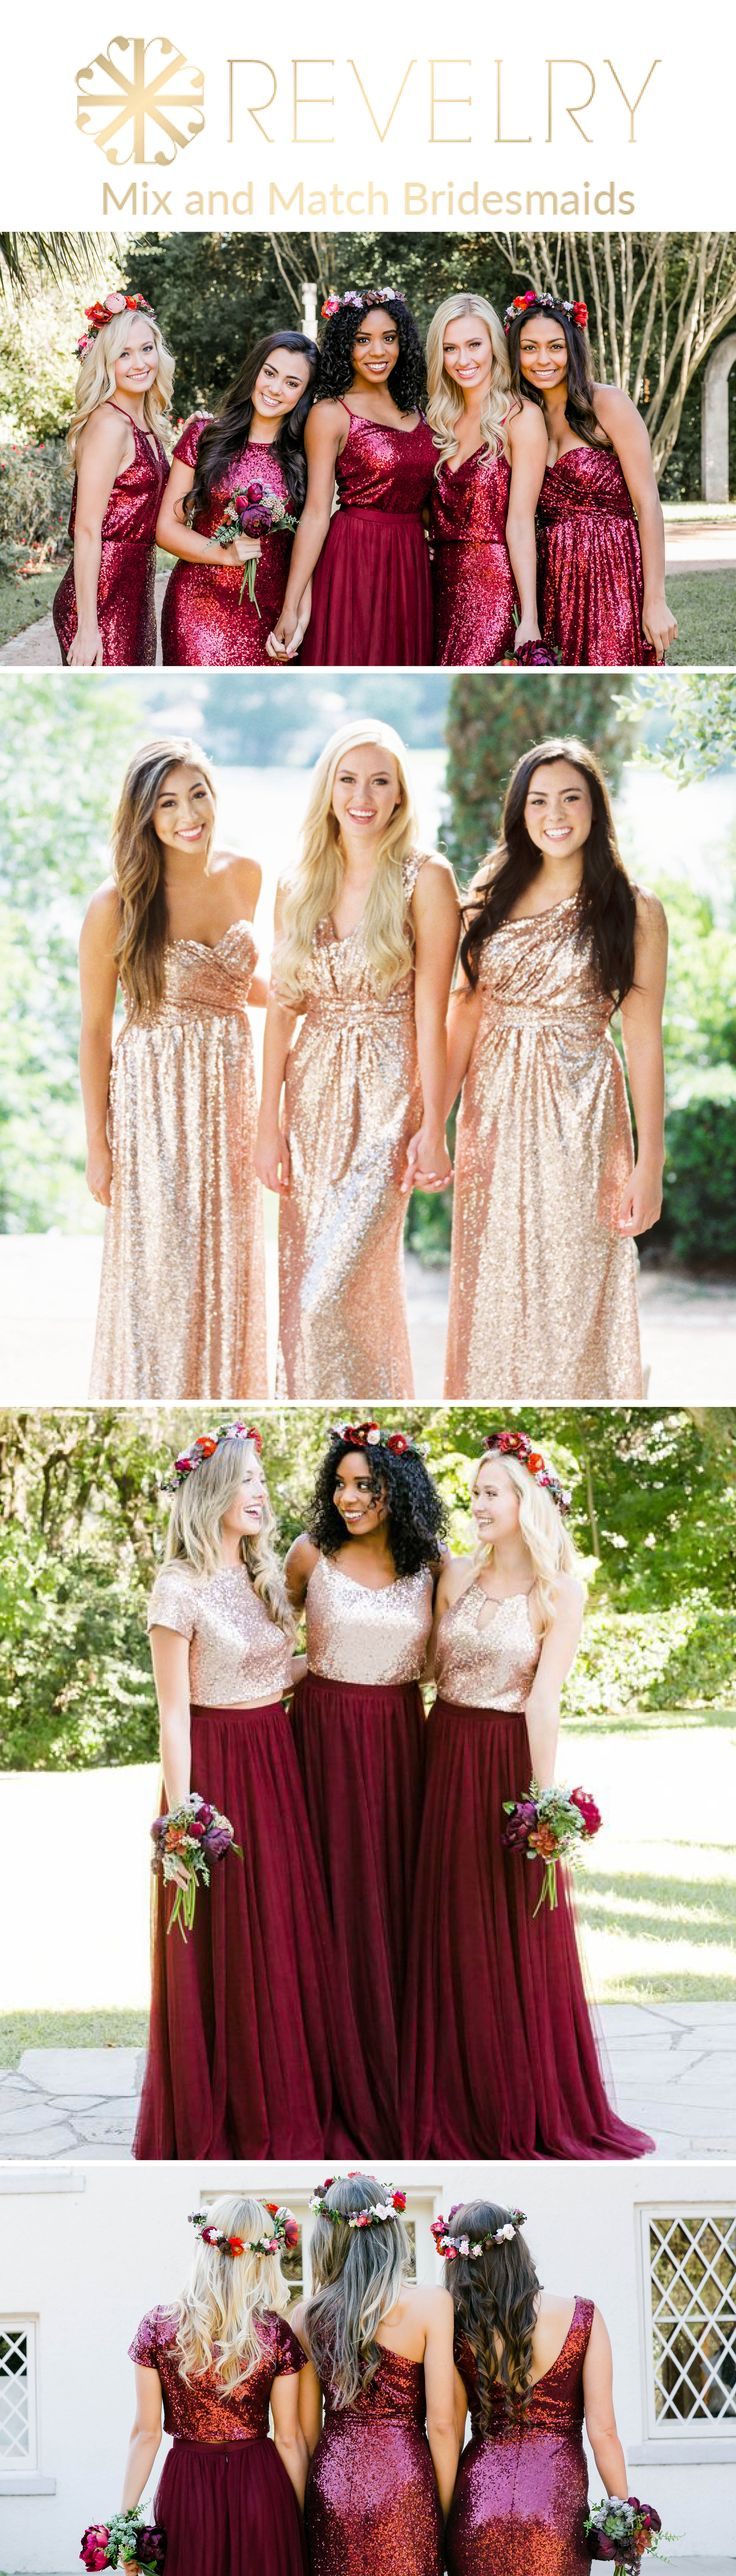 The 25 best unique bridesmaid dresses ideas on pinterest summer mix and match revelry bridesmaid dresses and separatesvelry has a wide selection of unique bridesmaids dresses including tulle skirts classic chiffon ombrellifo Choice Image